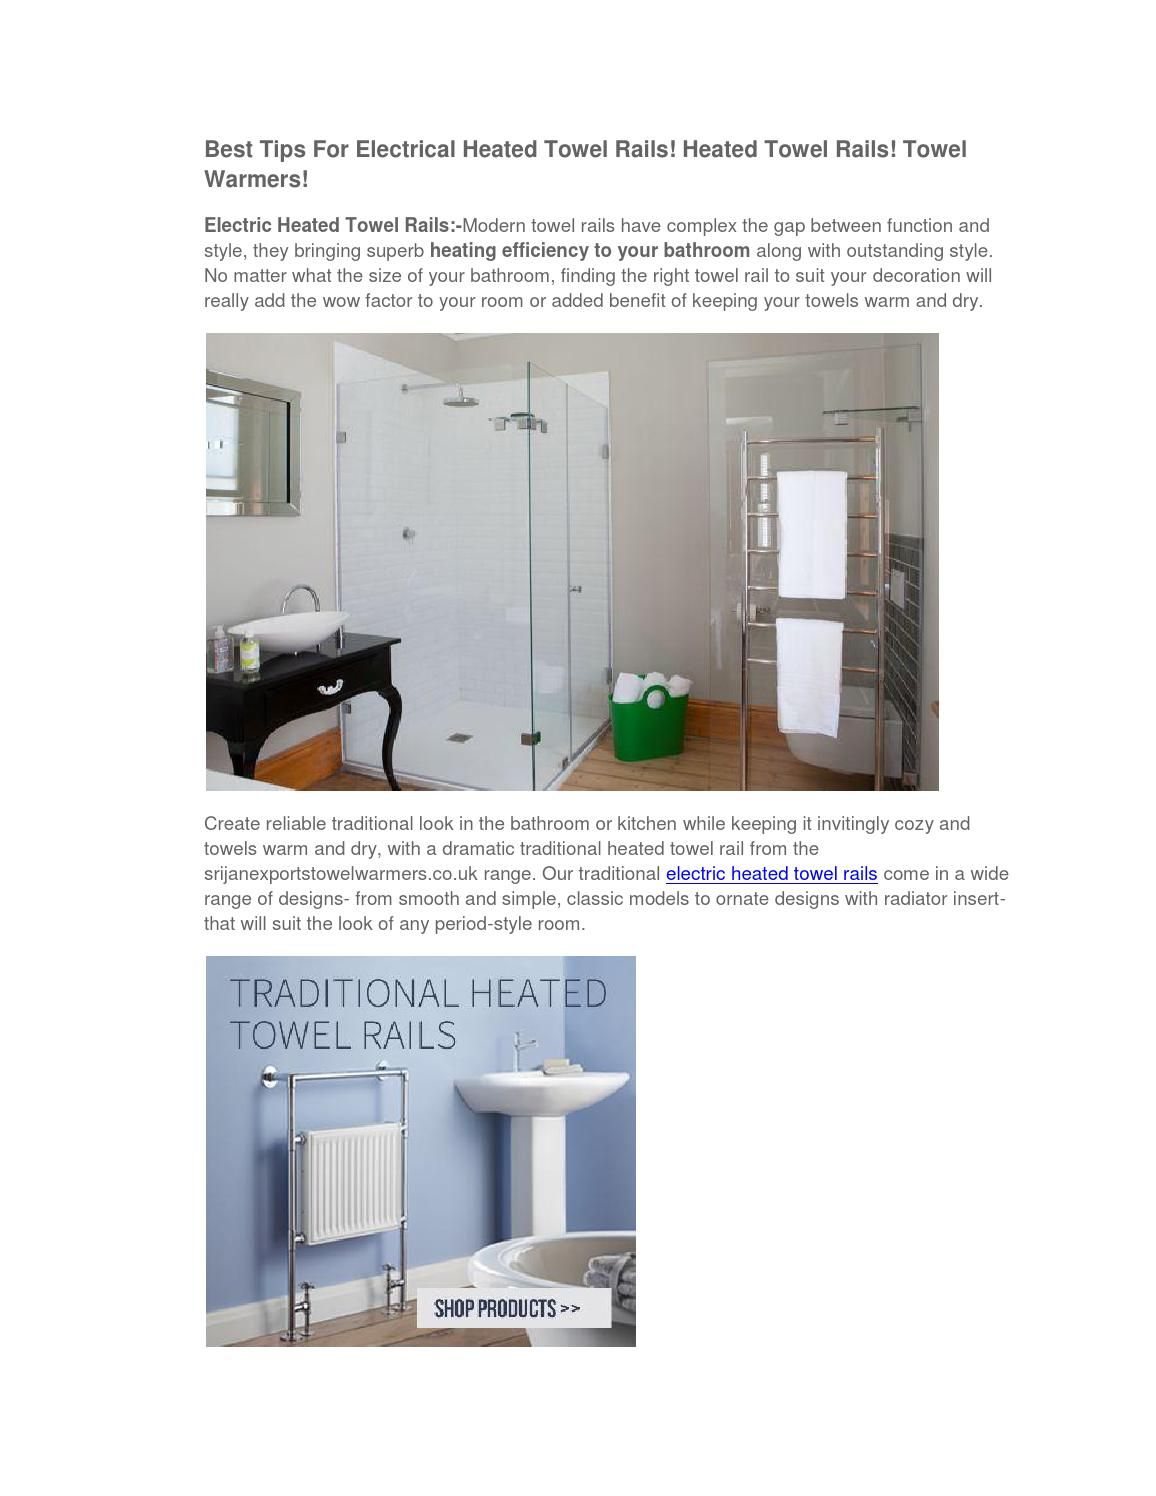 Best tips for electrical heated towel rails